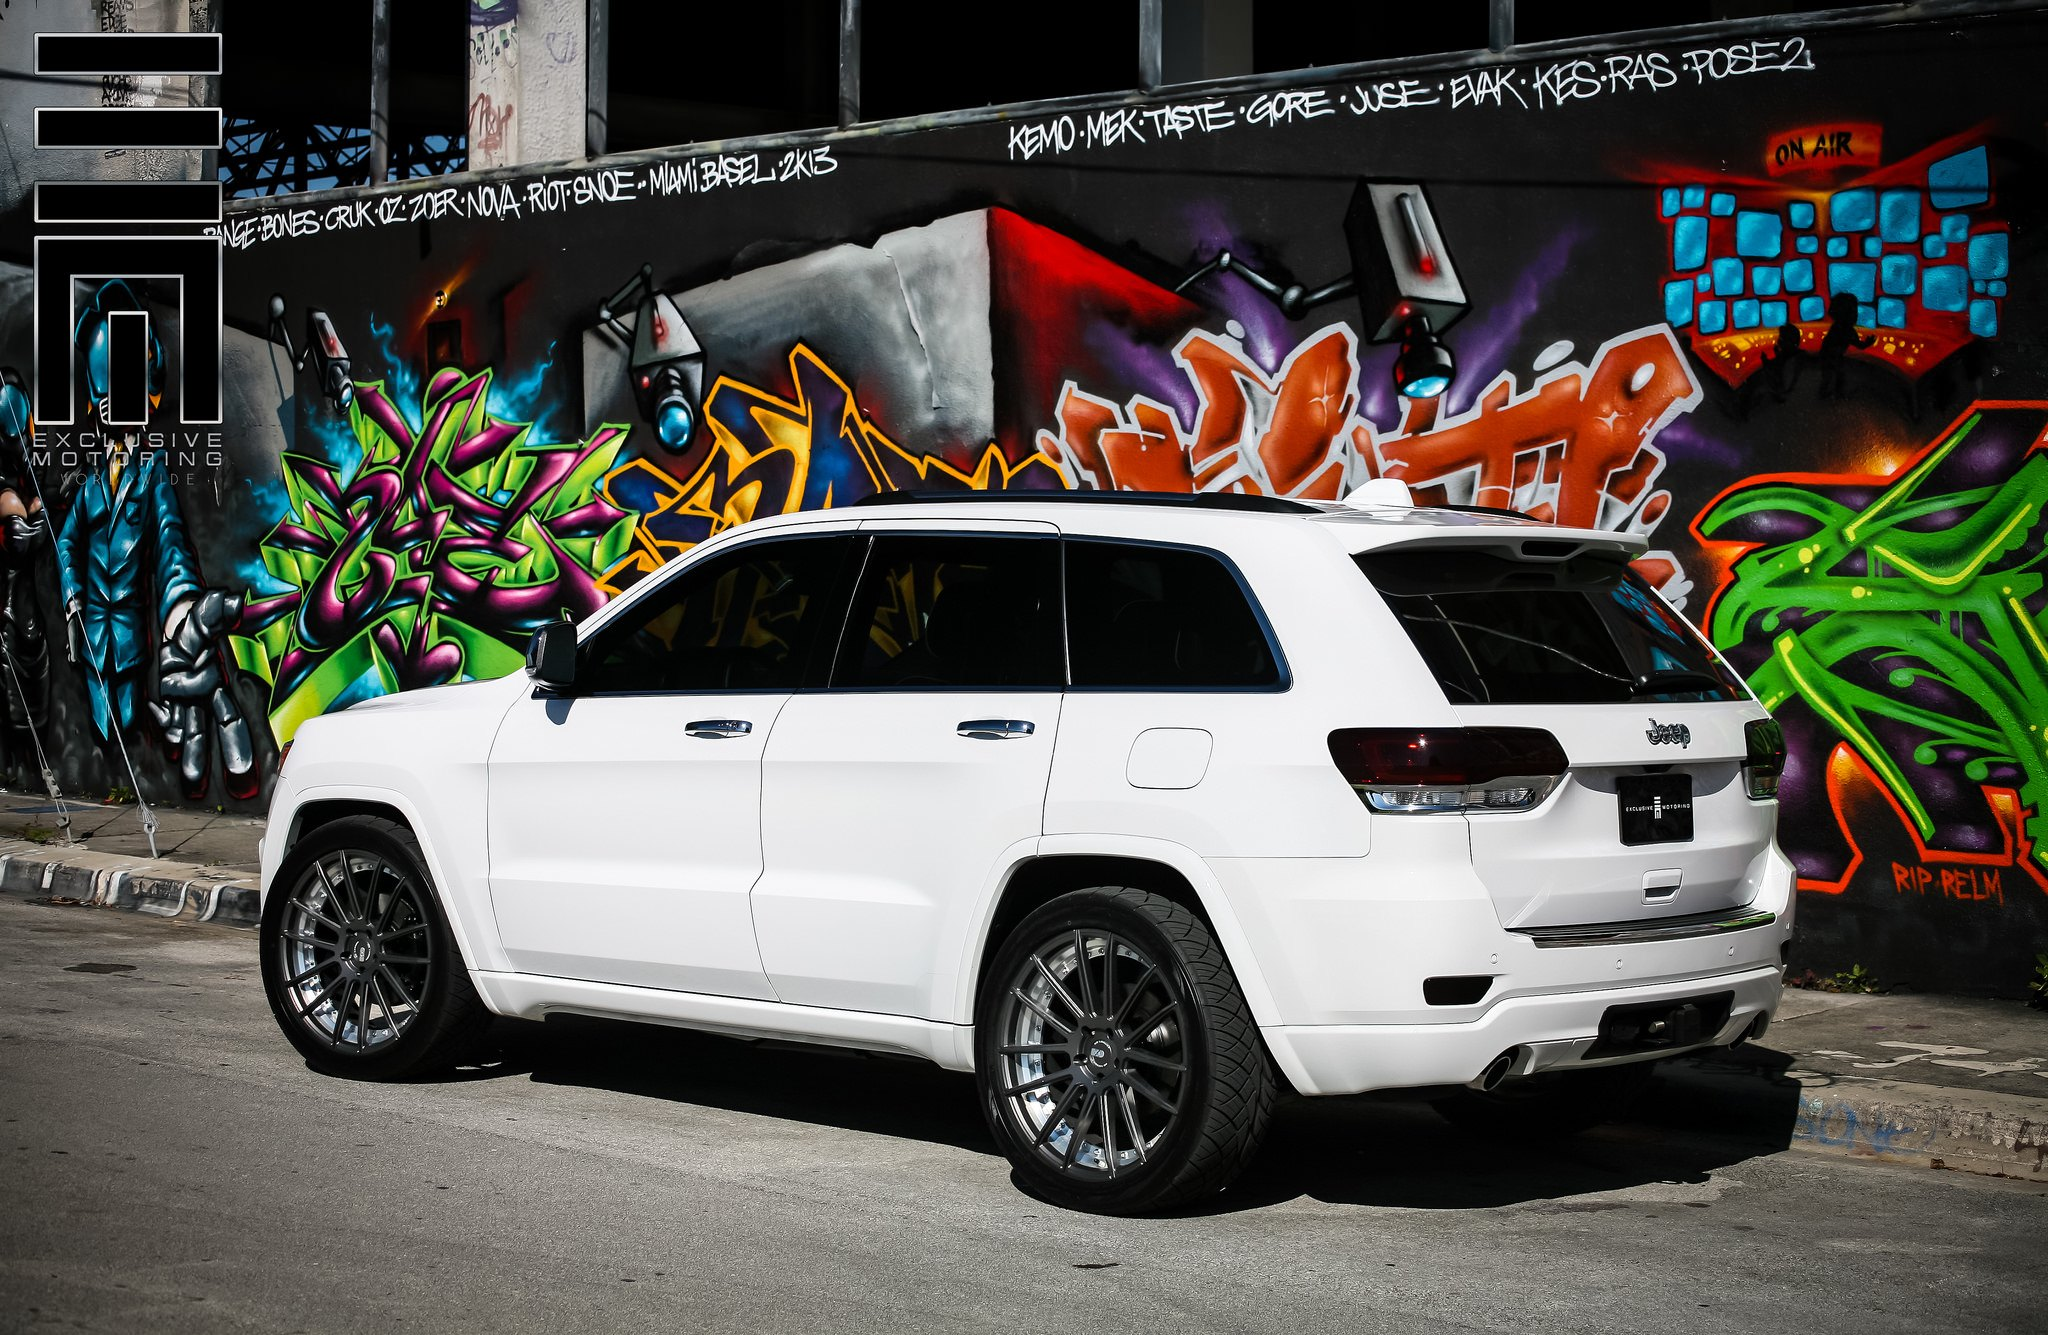 Graphite Gray Custom Rims On Grand Cherokee Srt8 By Exclusive